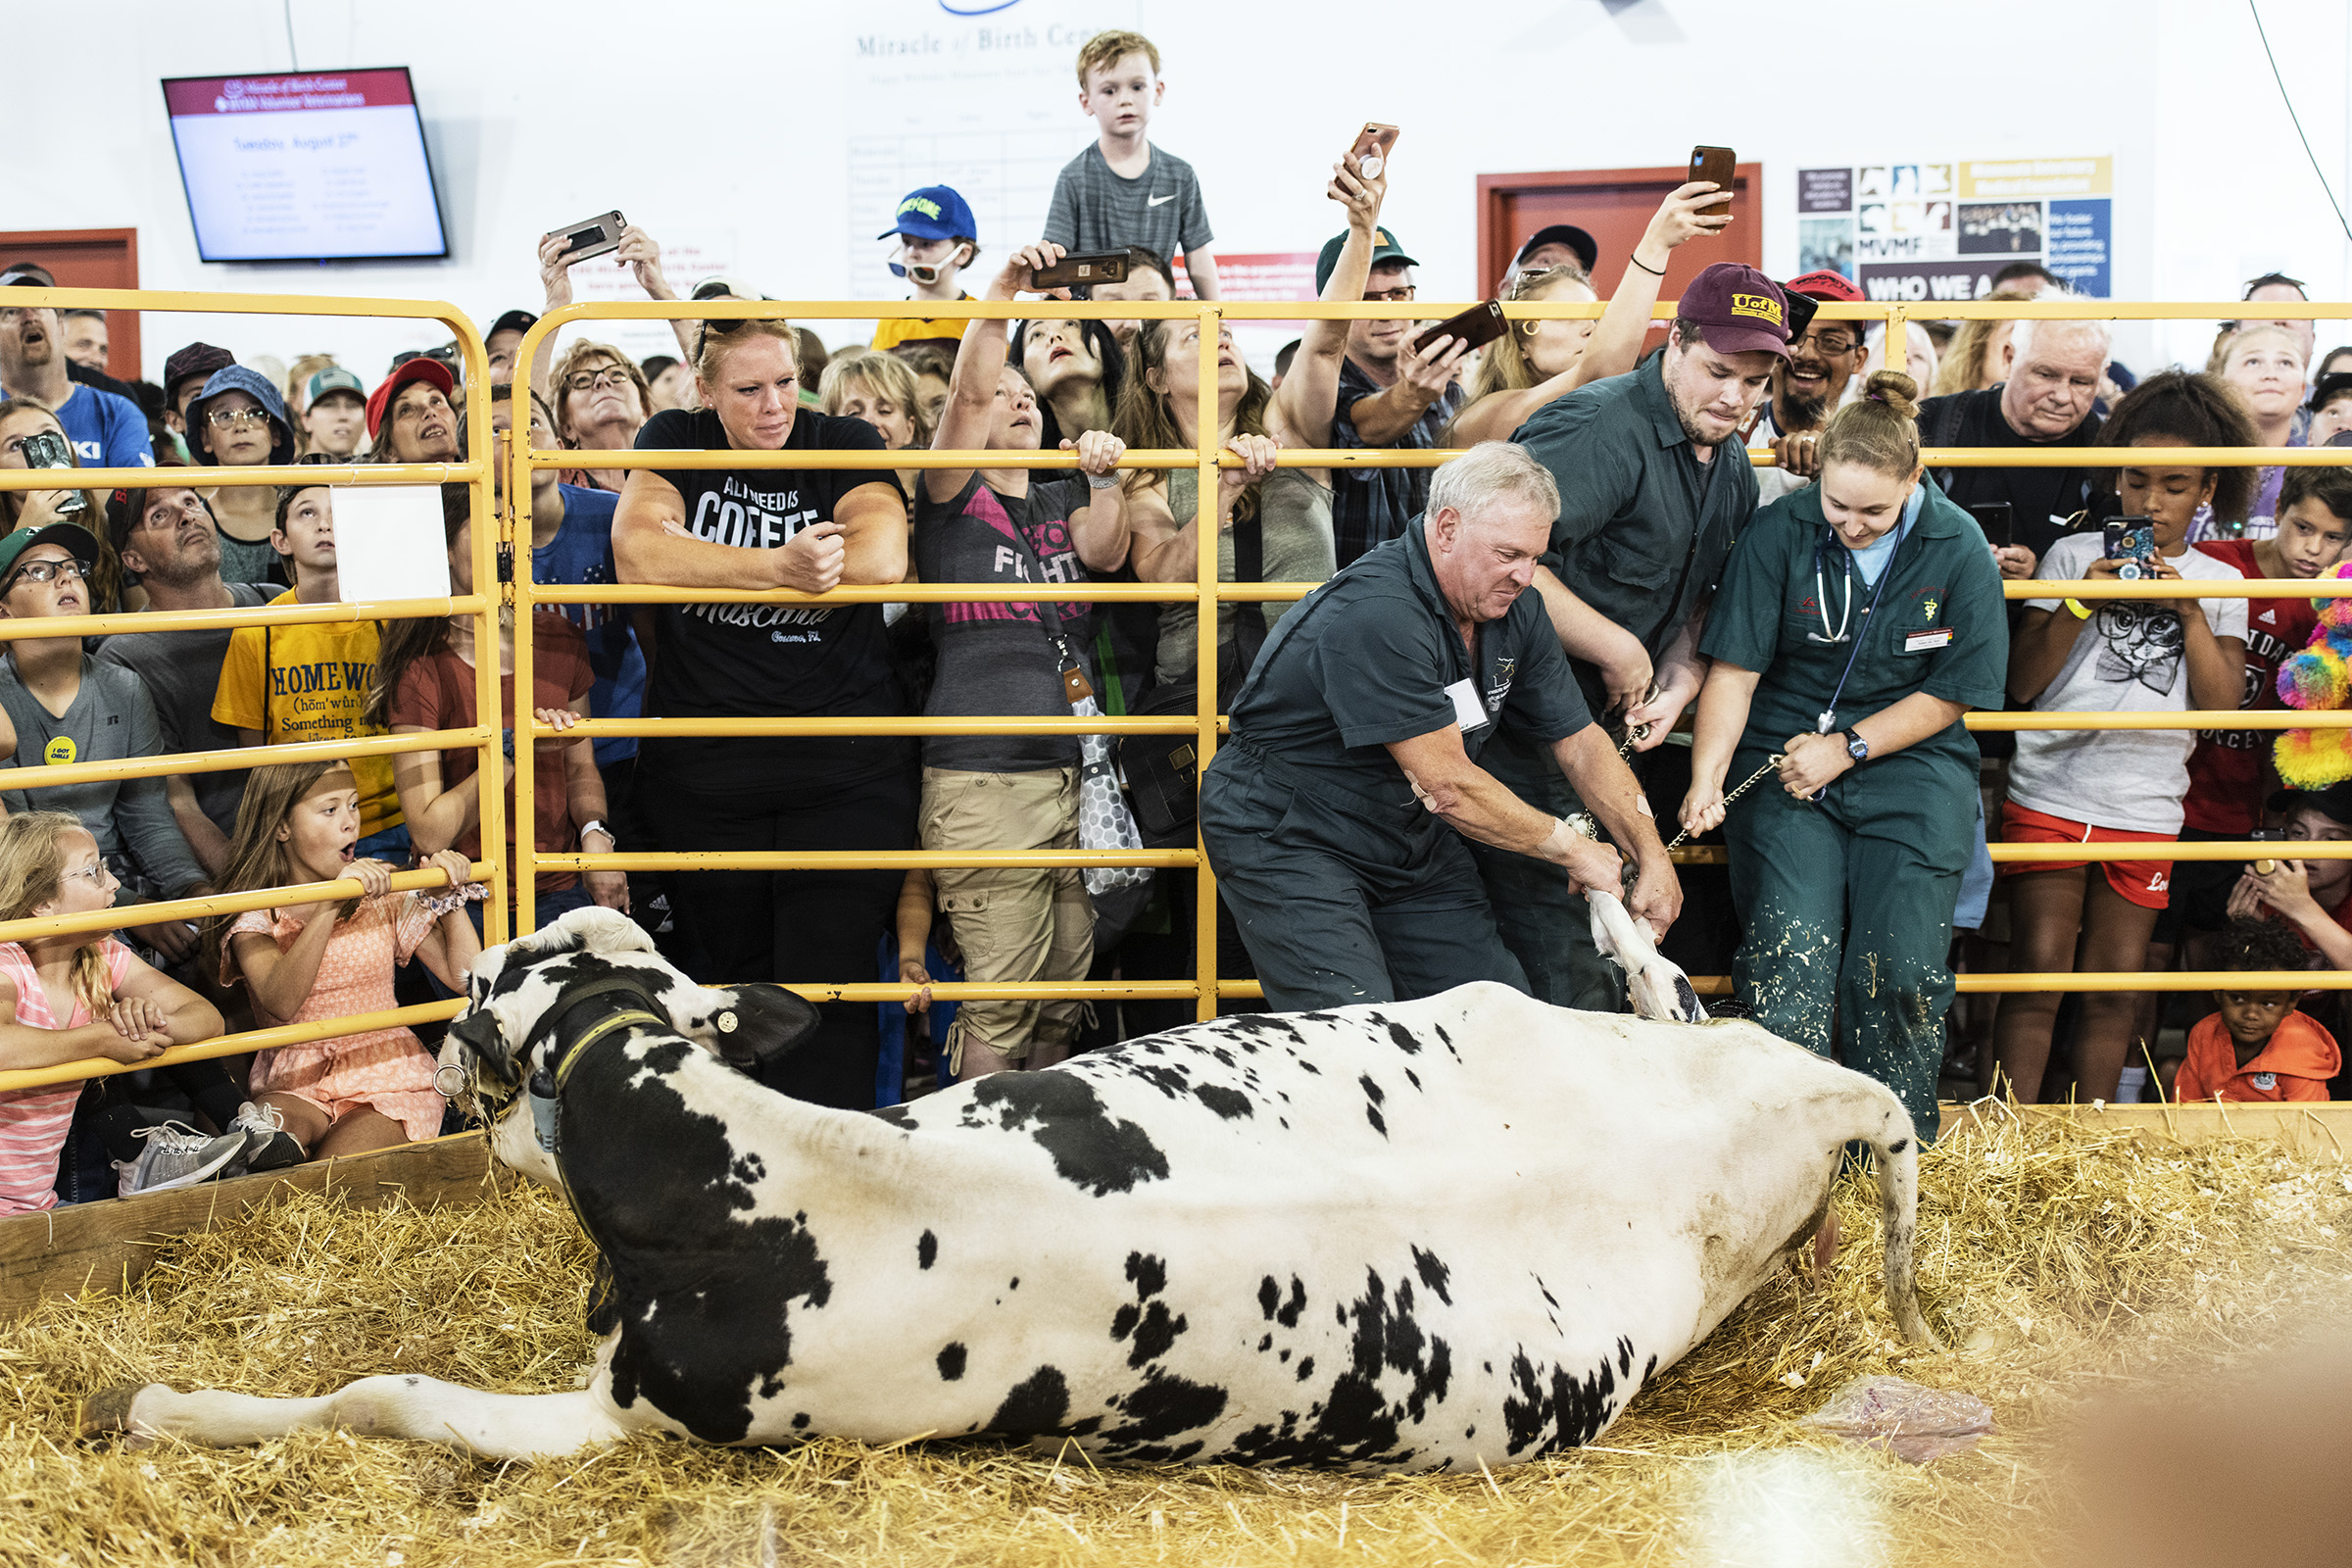 A crowd watches as a cow births a calf at the Miracle of Life building at the Minnesota State Fair in St. Paul, MN on August 23, 2019.